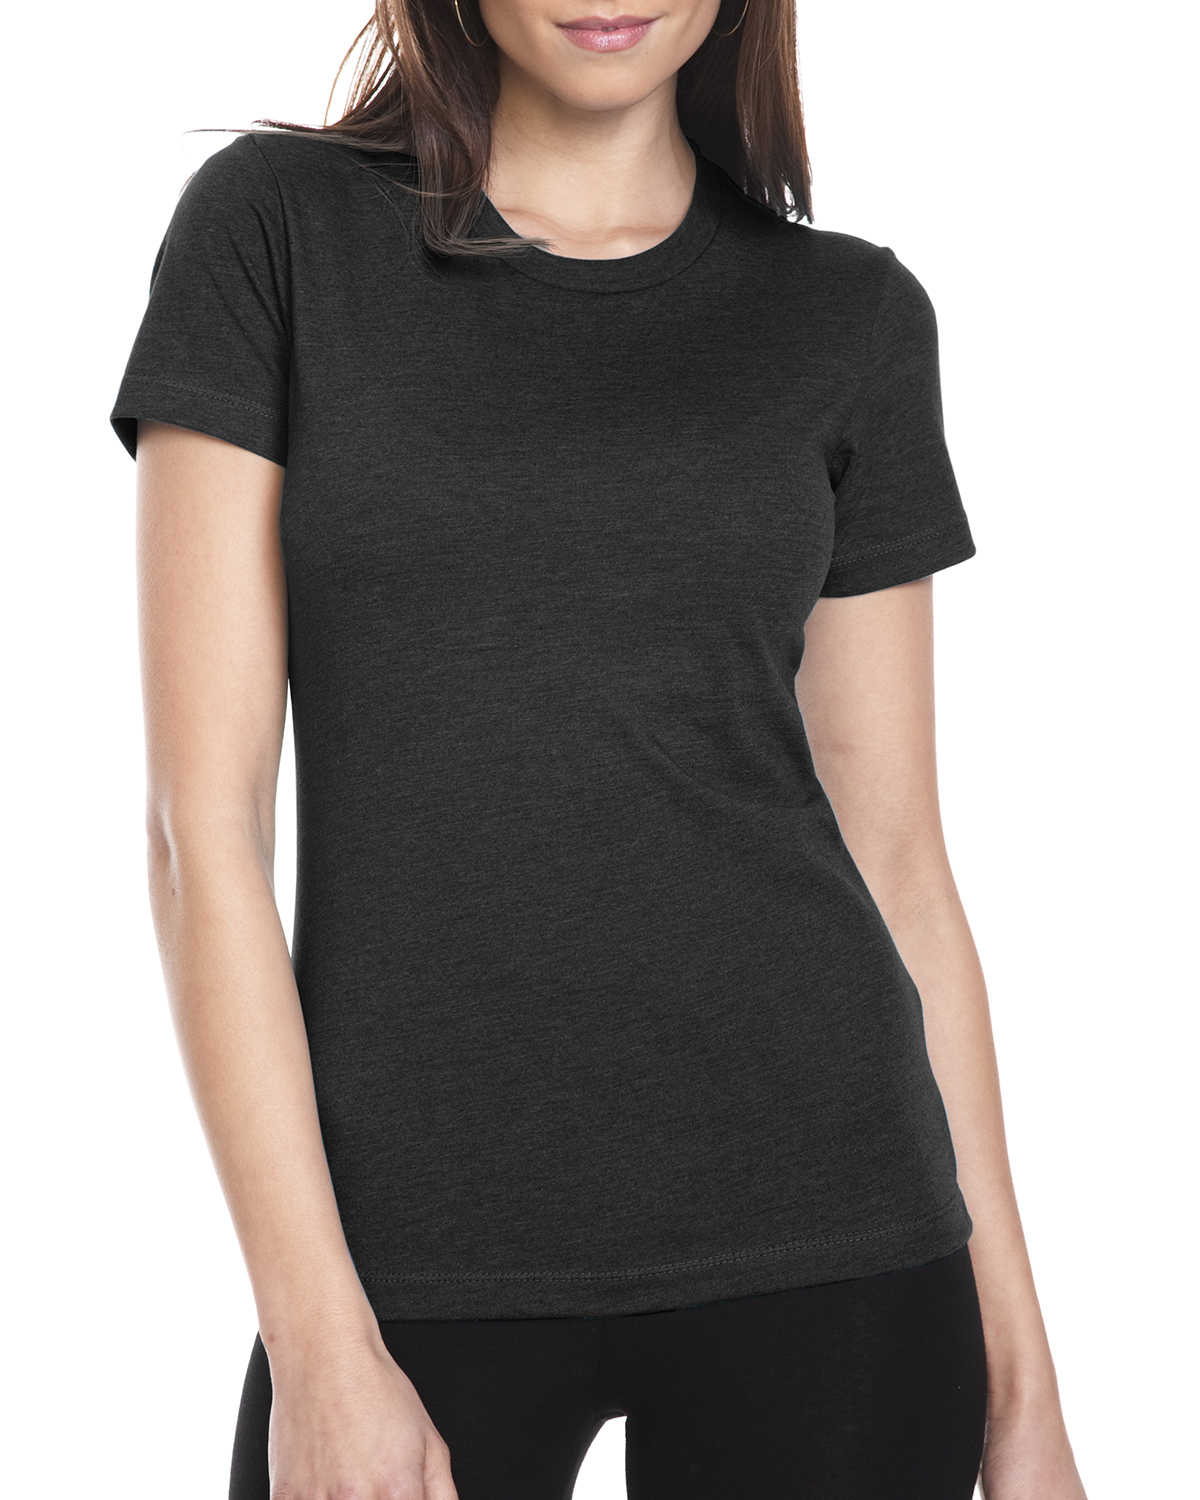 Next Level 6610 - Womens CVC Short Sleeve Crew